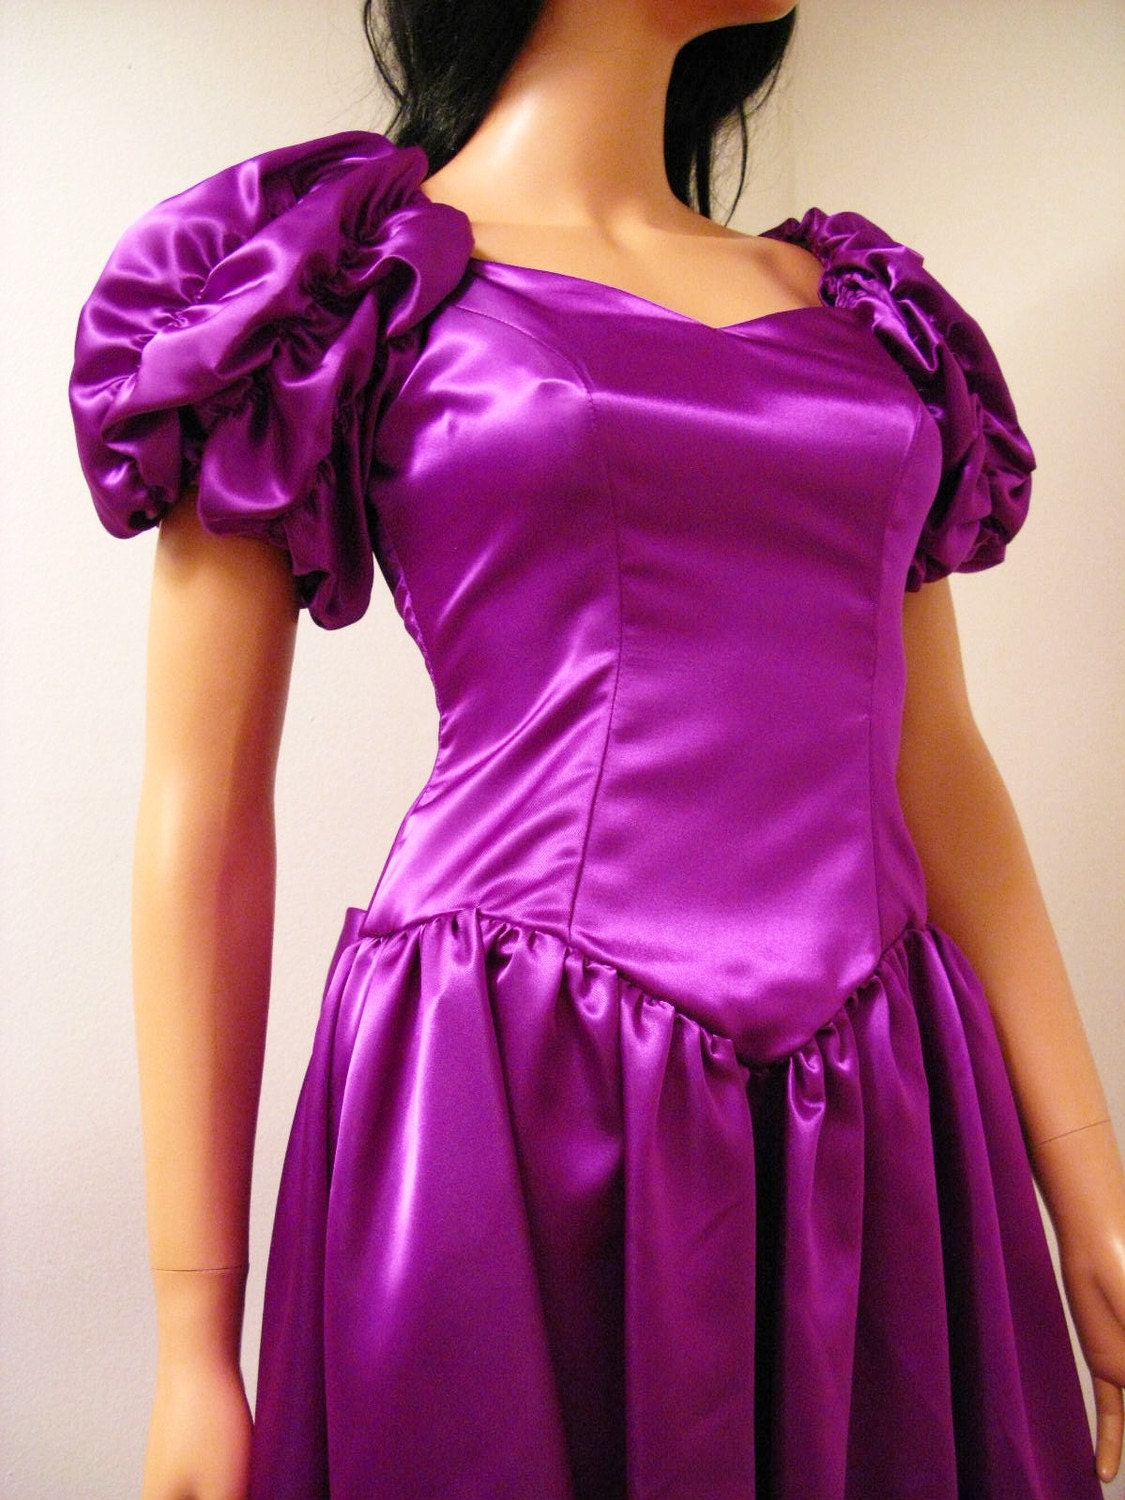 80s Vintage Clothing In The Uk Just Got Easier: Purple Satin 80s Prom Dress Vintage 1980s Long Formal Gown